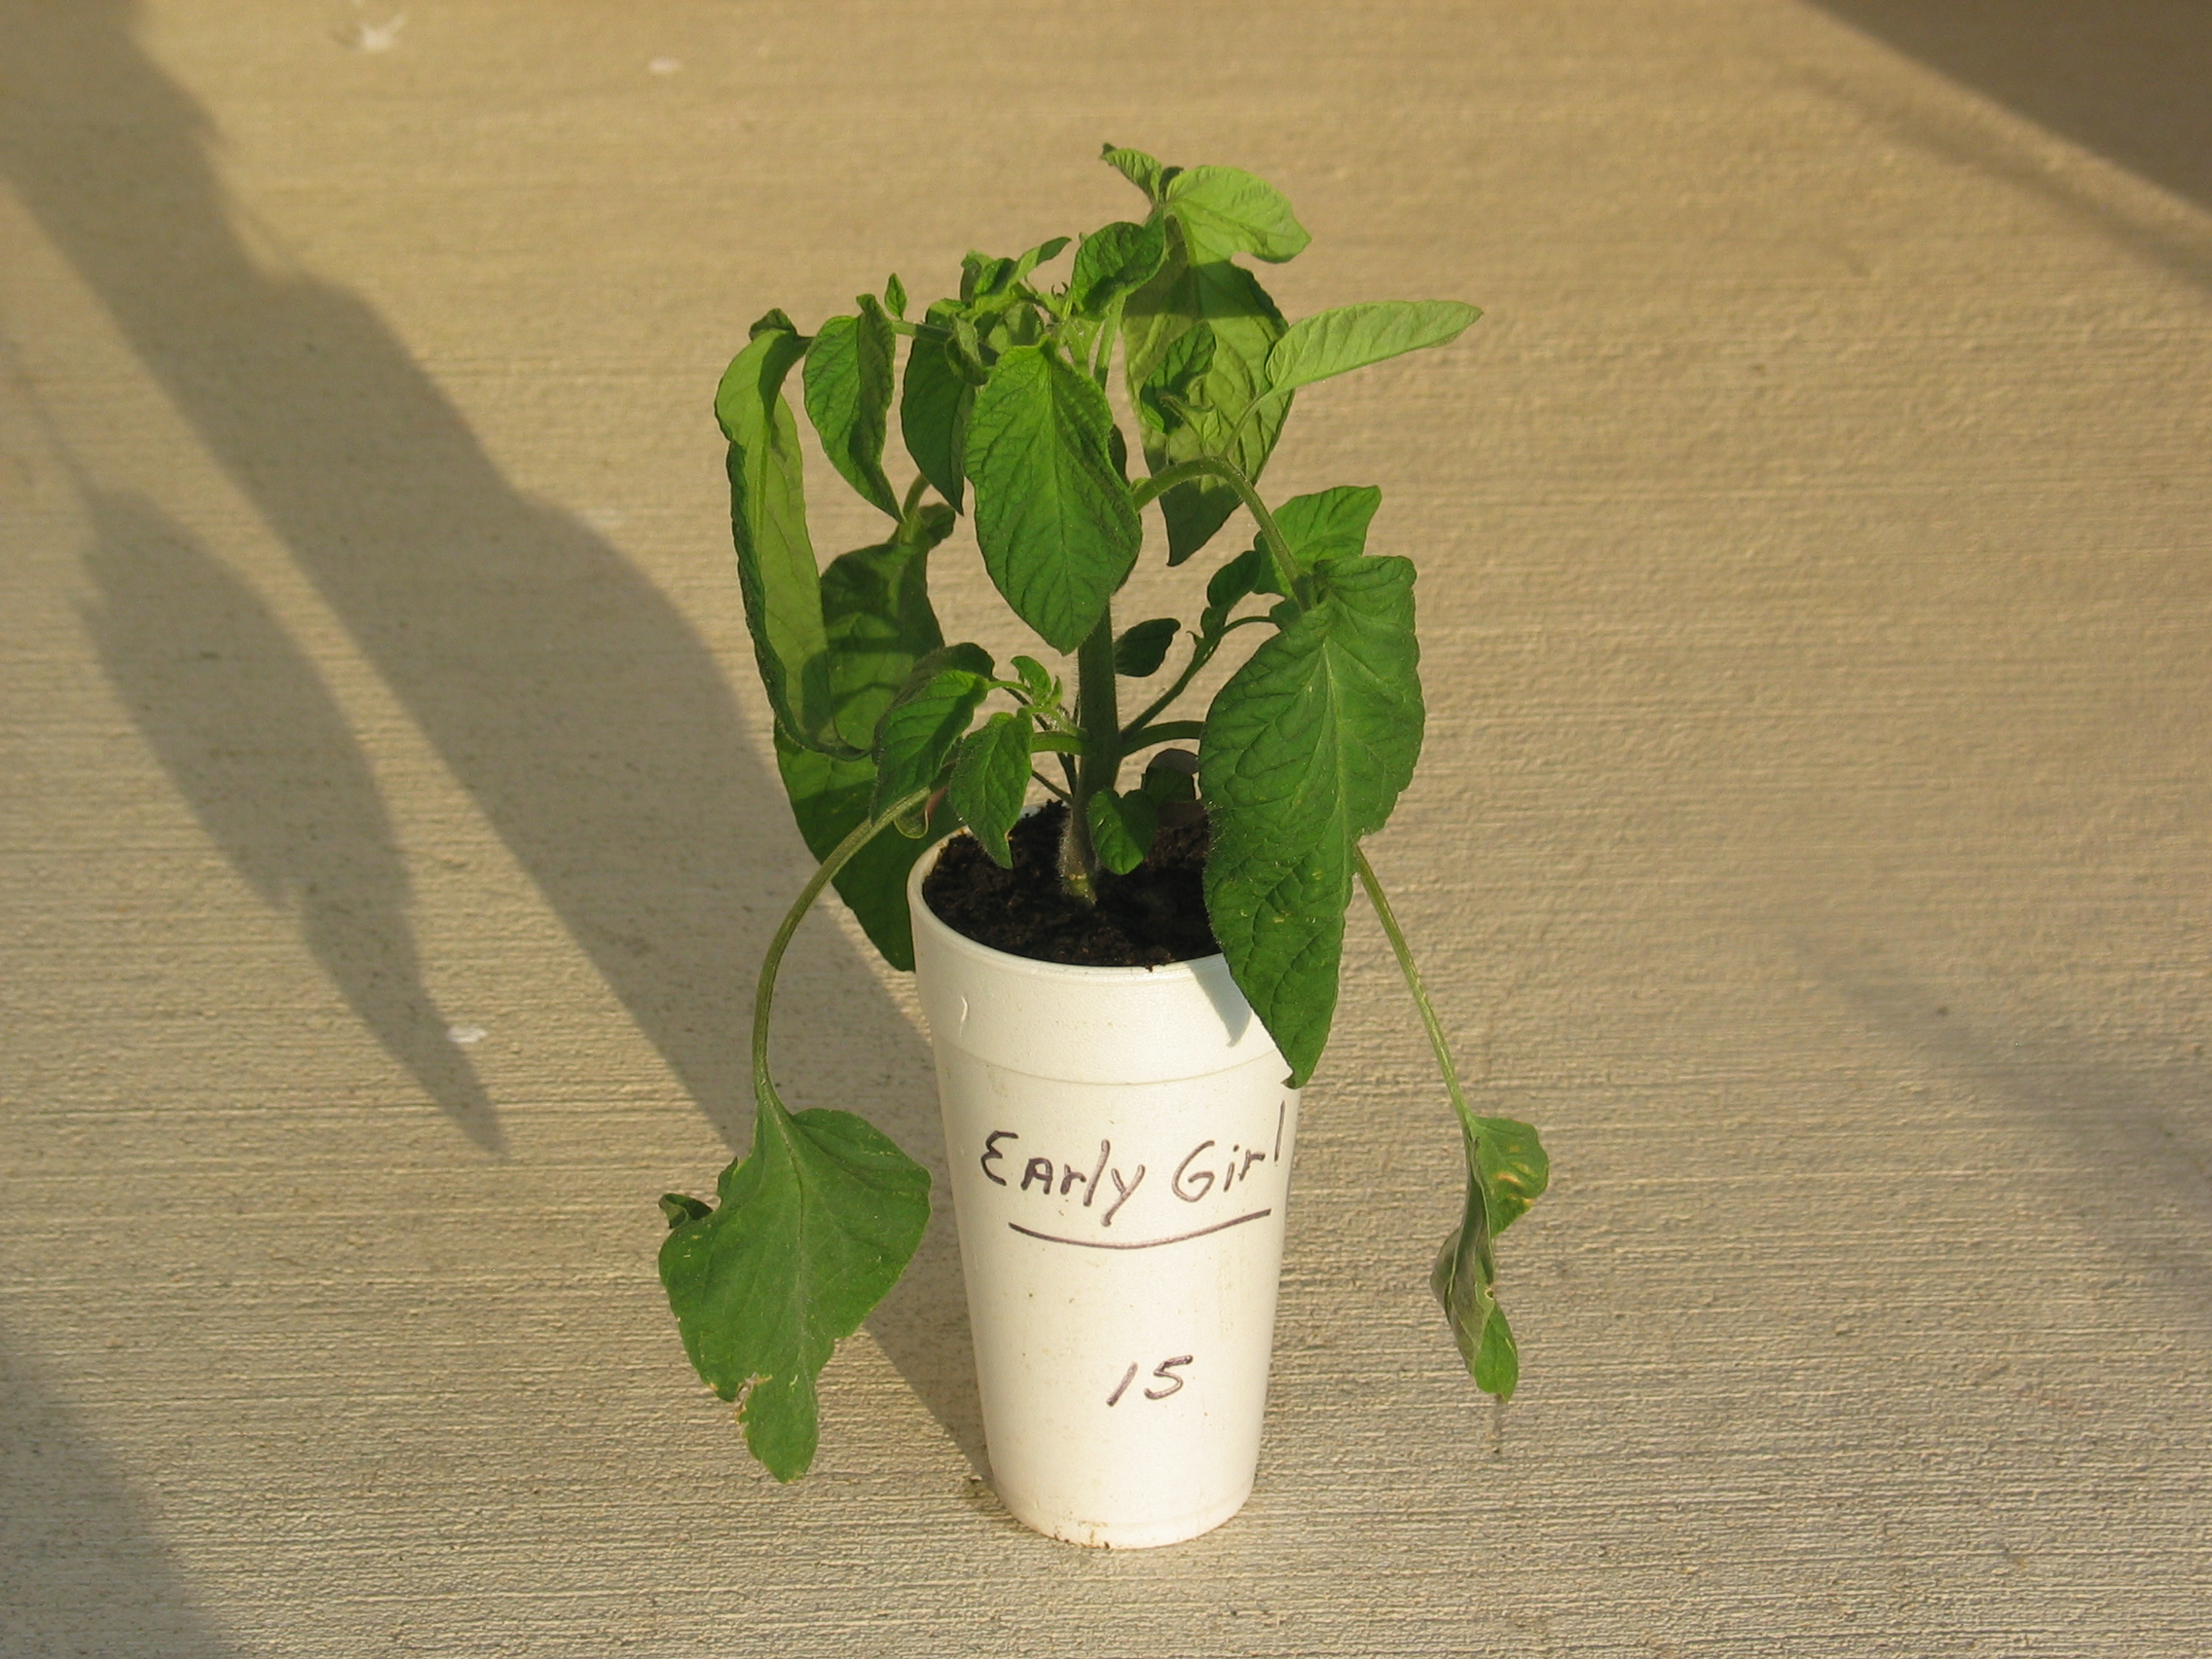 image of a young tomato plant just before planting